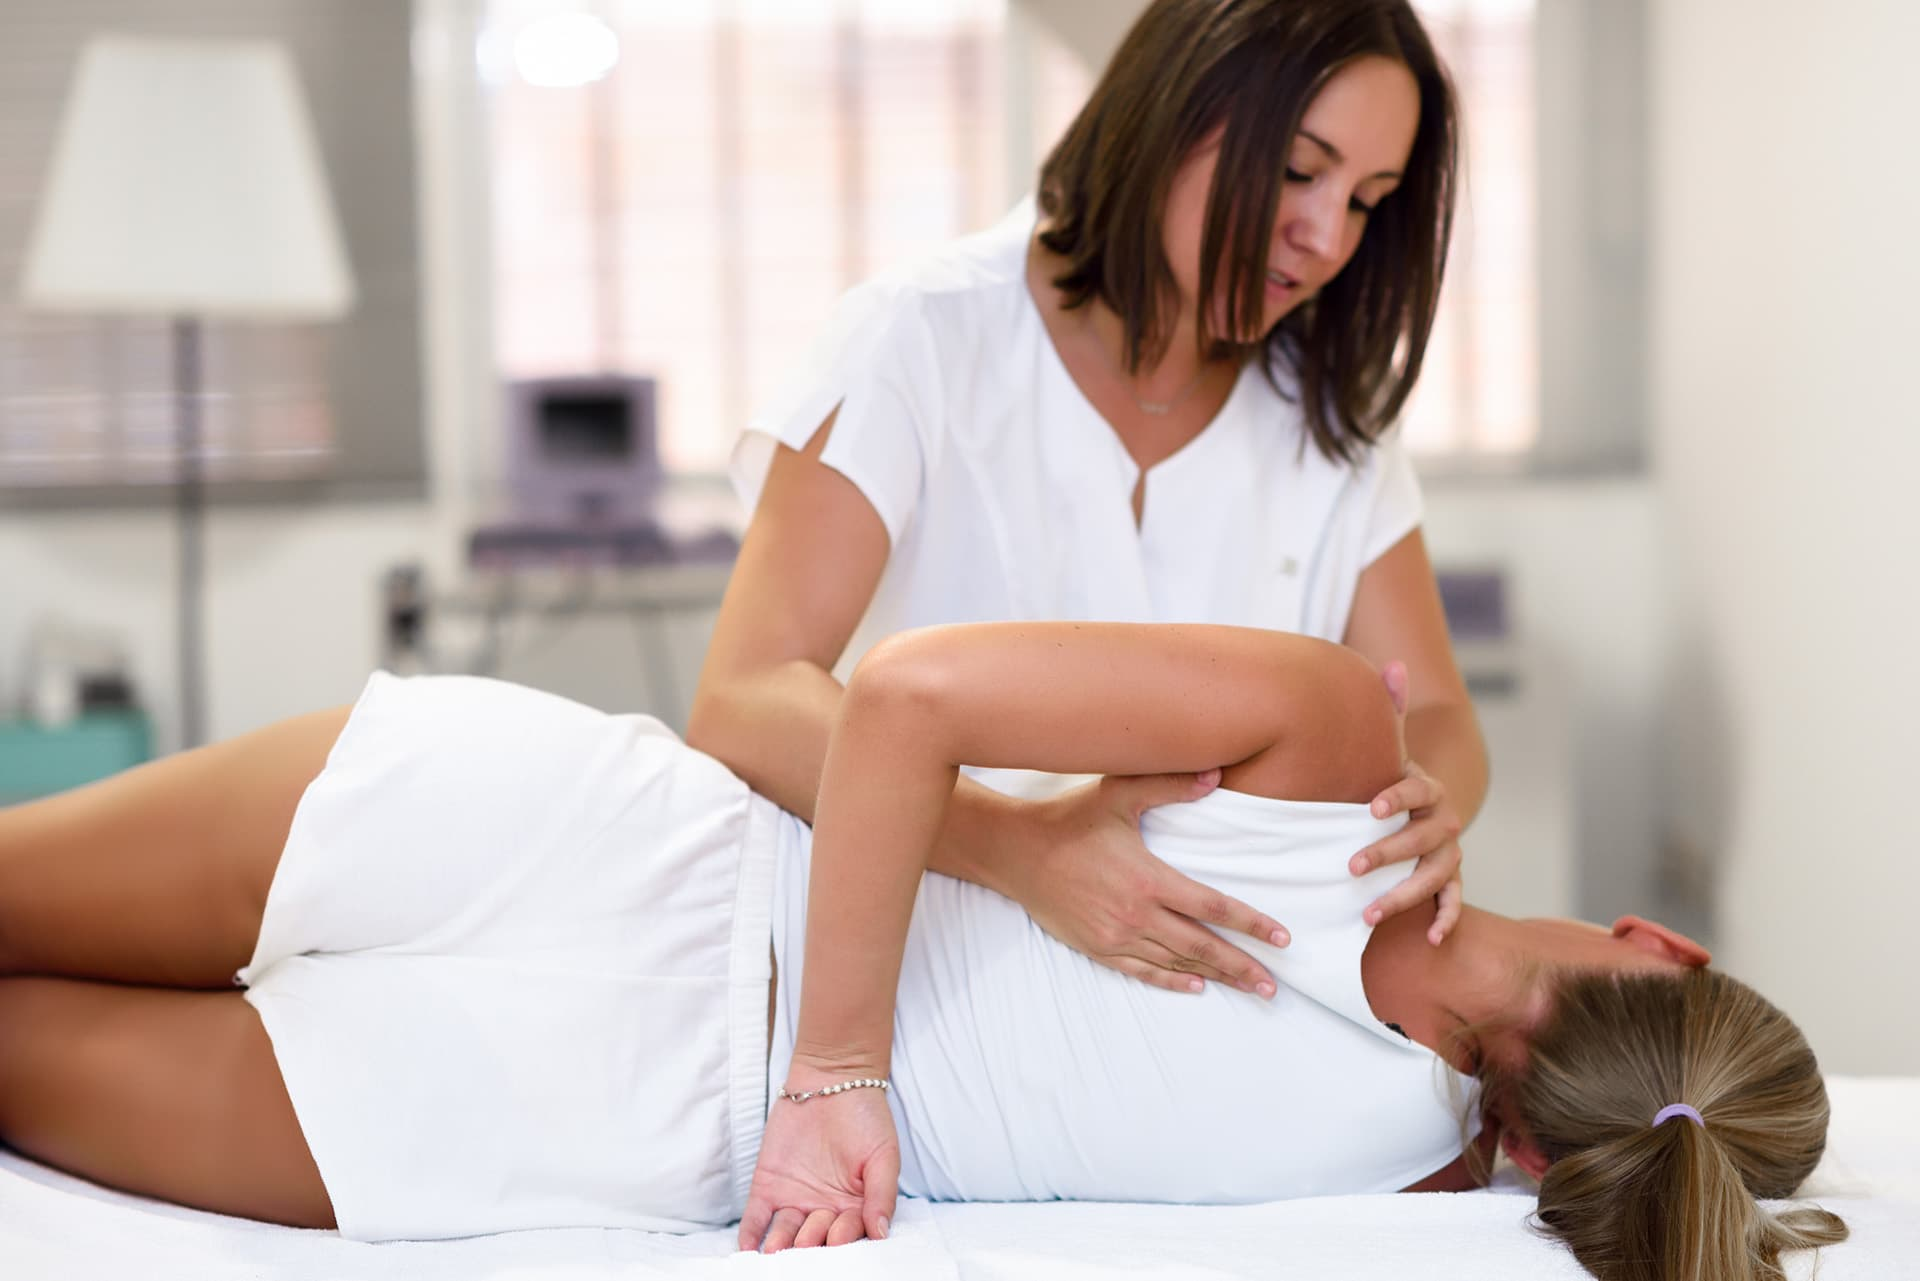 Chiropractor adjusting a patient laying down with medical professional liability insurance